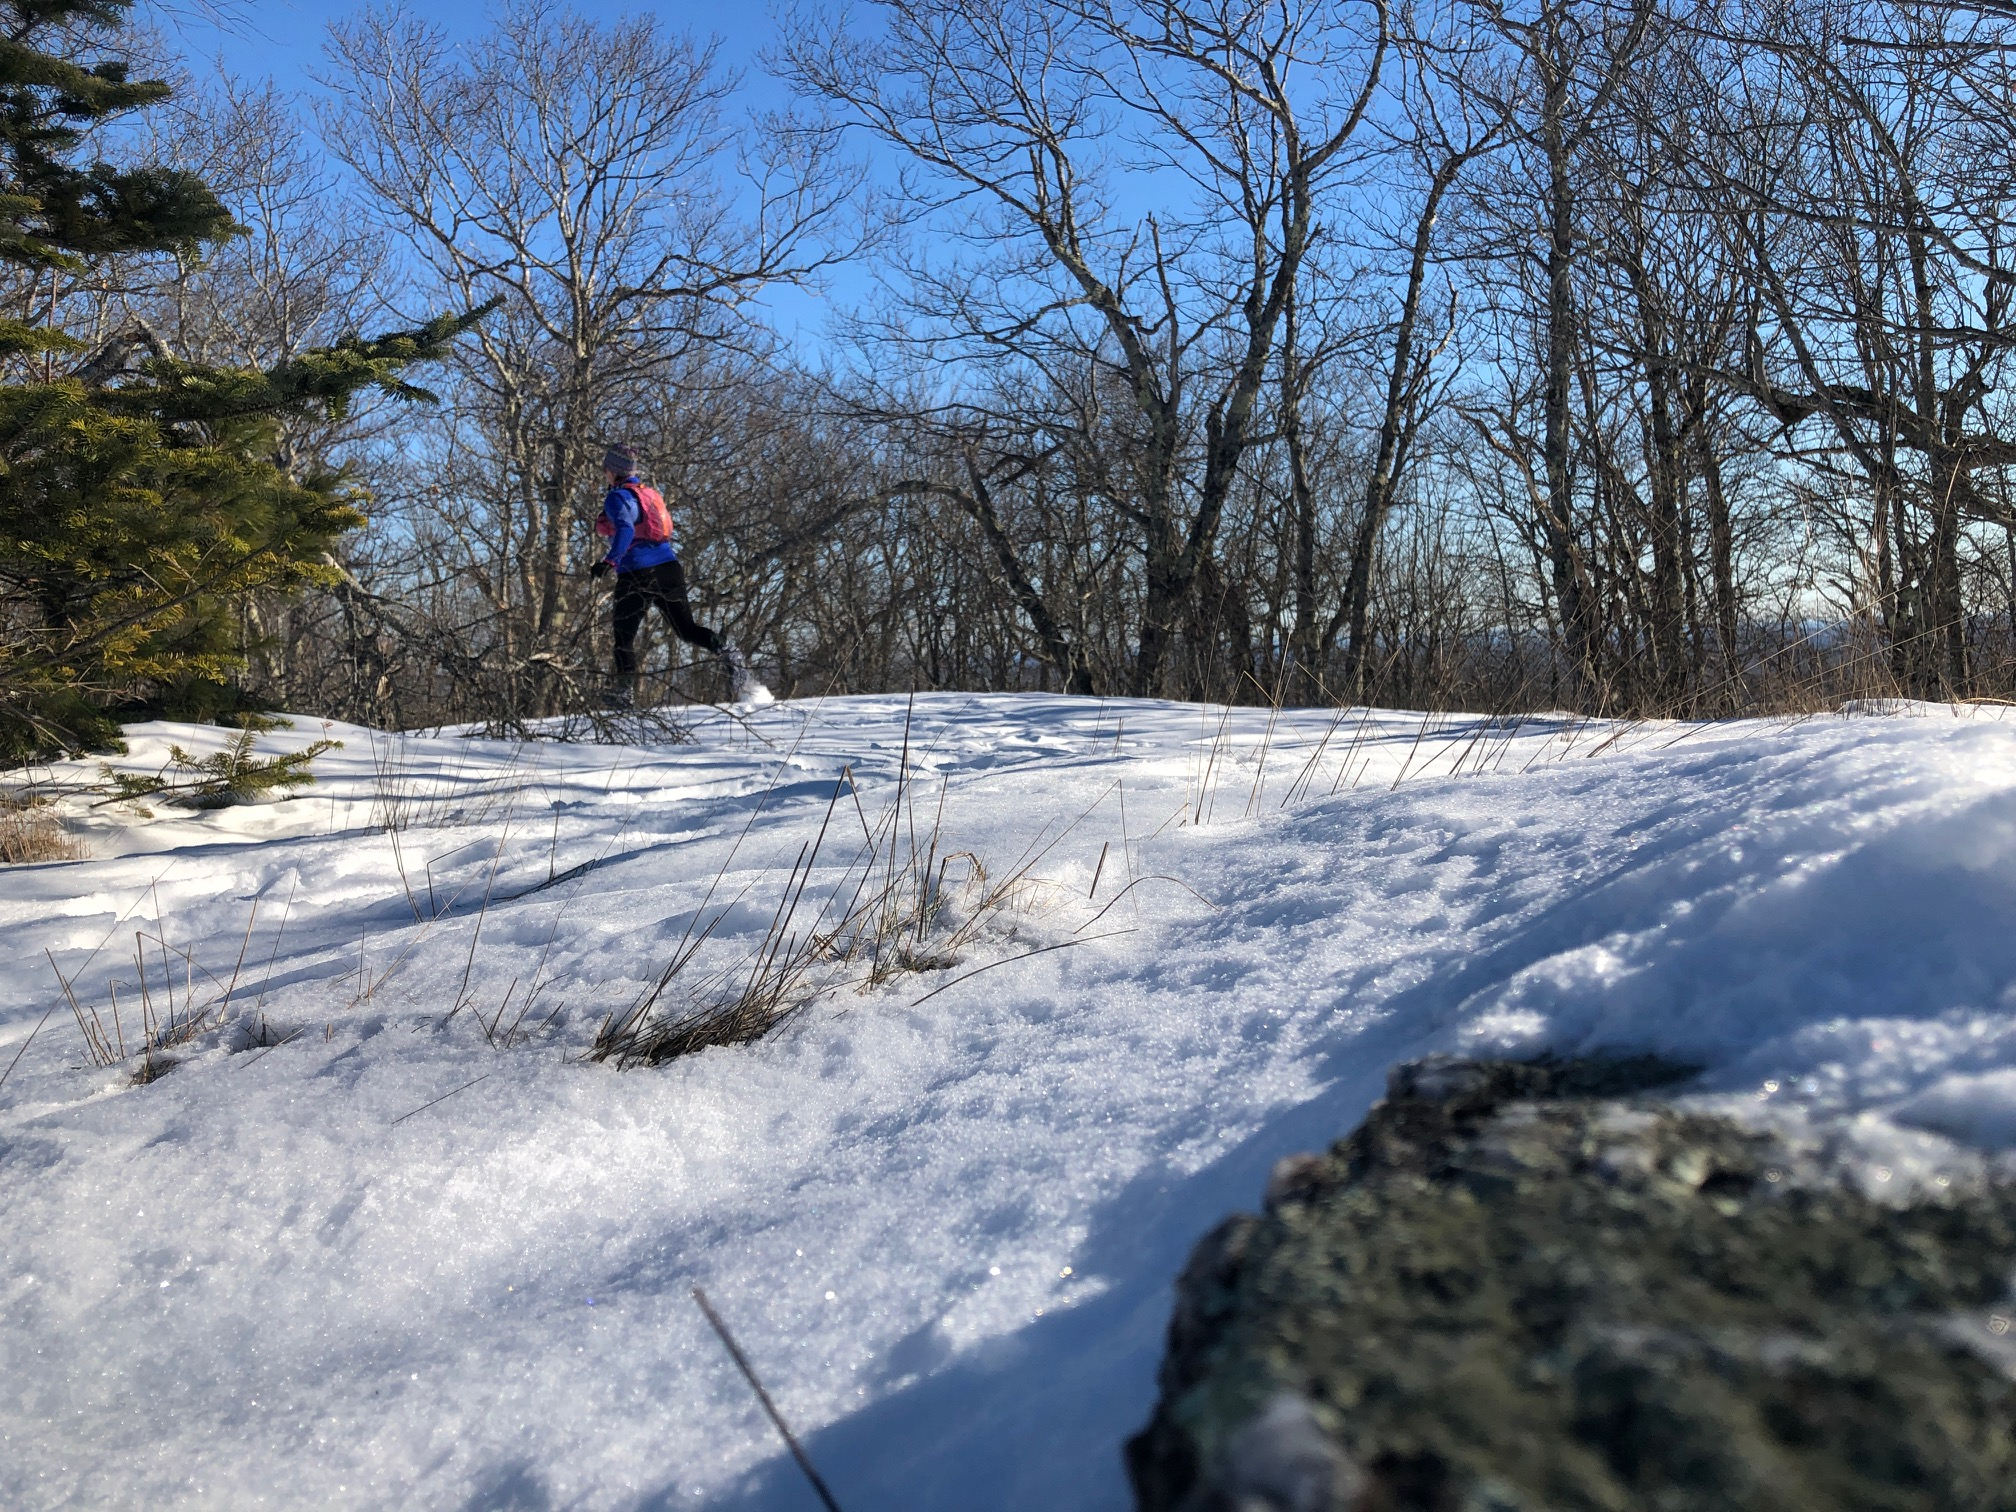 Winter trails are sometimes even better than summer trails!